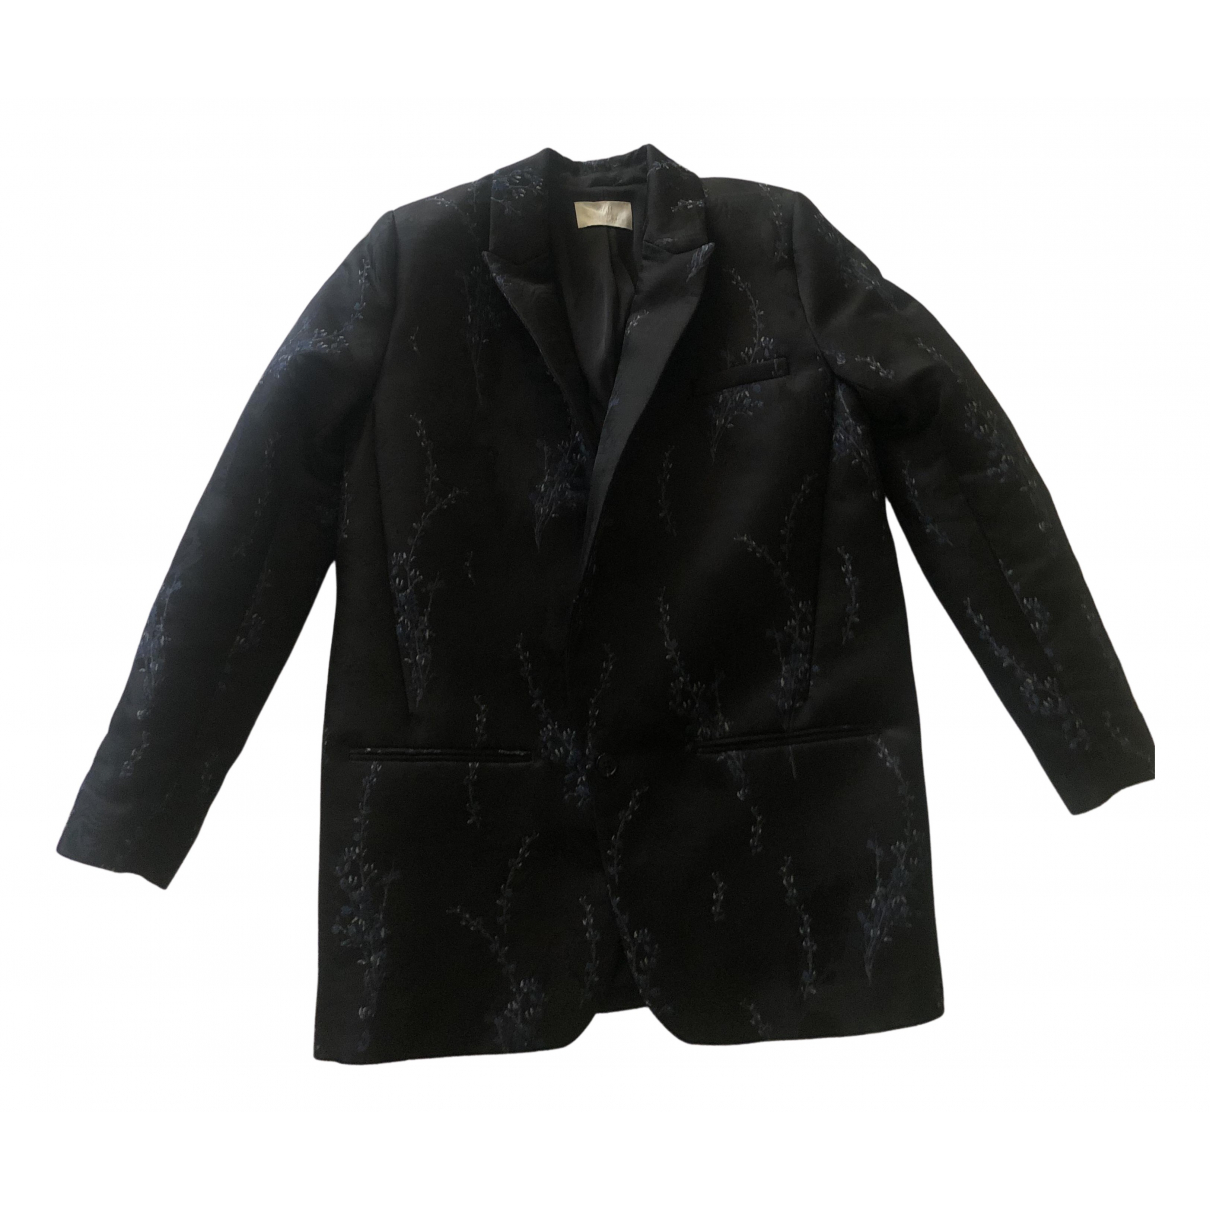 H&m Conscious Exclusive N Black jacket for Women 36 FR